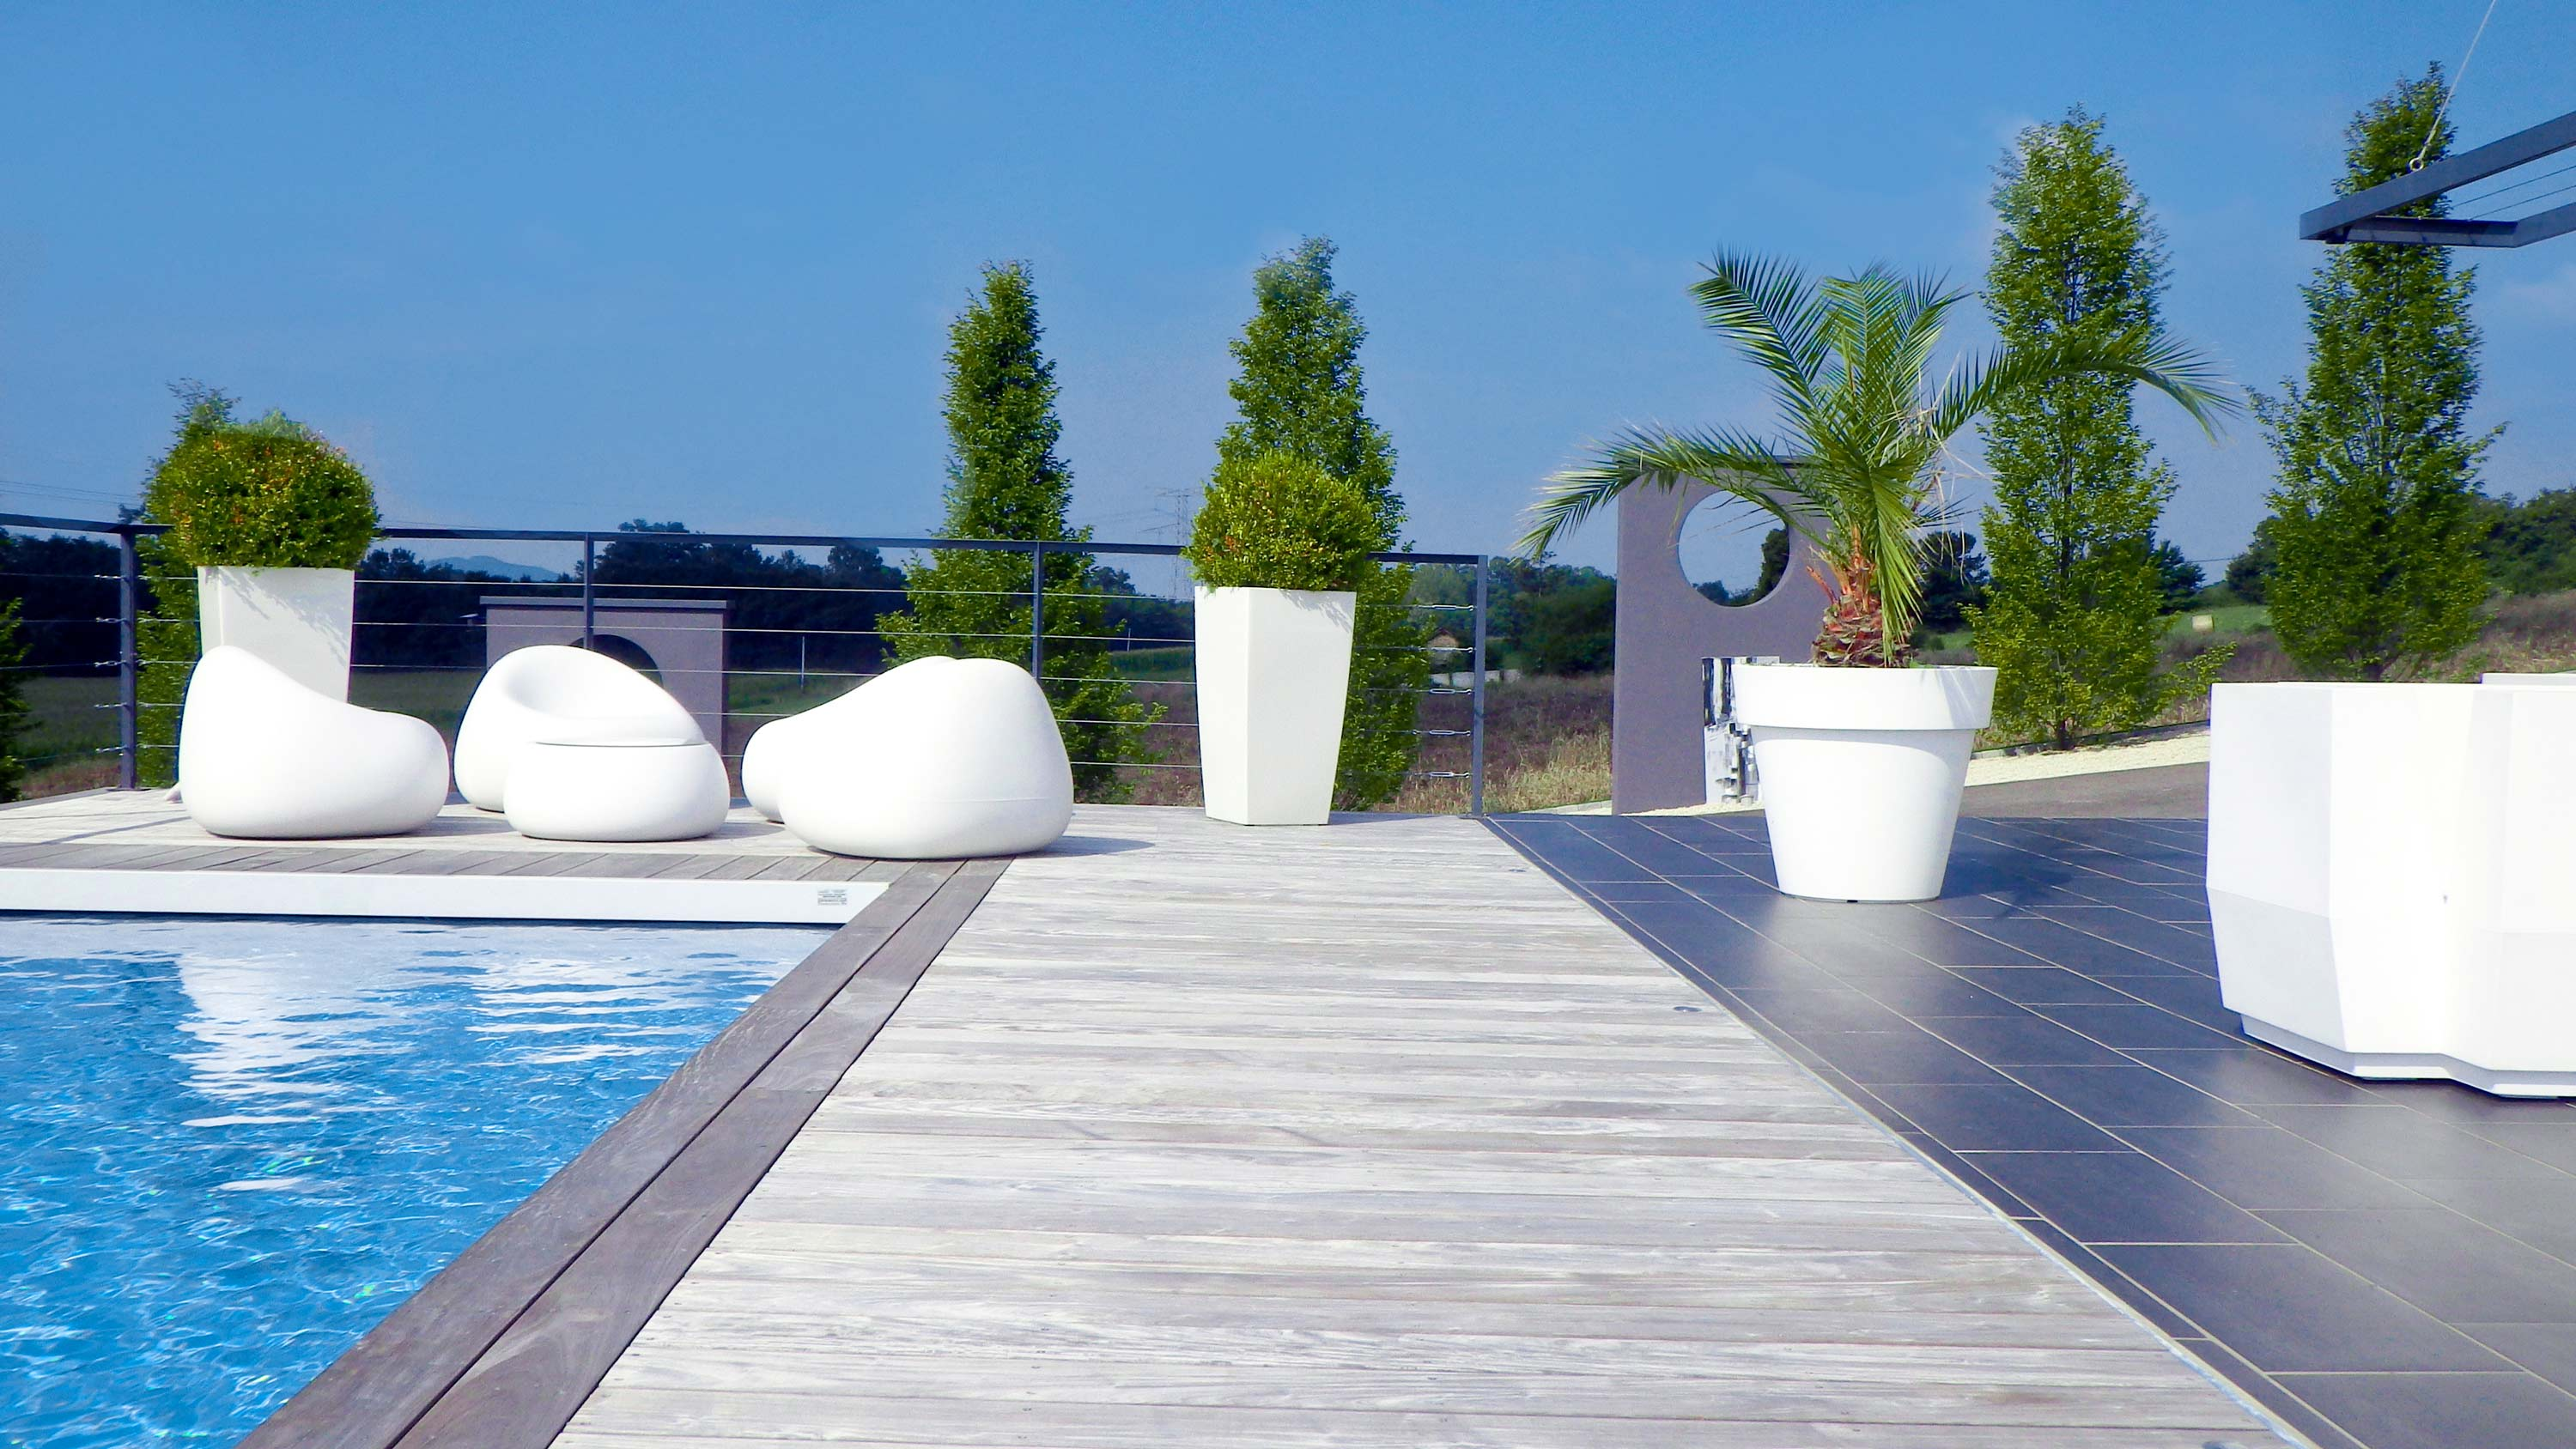 Piscine 1 web les paysagistes francais bourgoin - Amenagement piscine design saint etienne ...